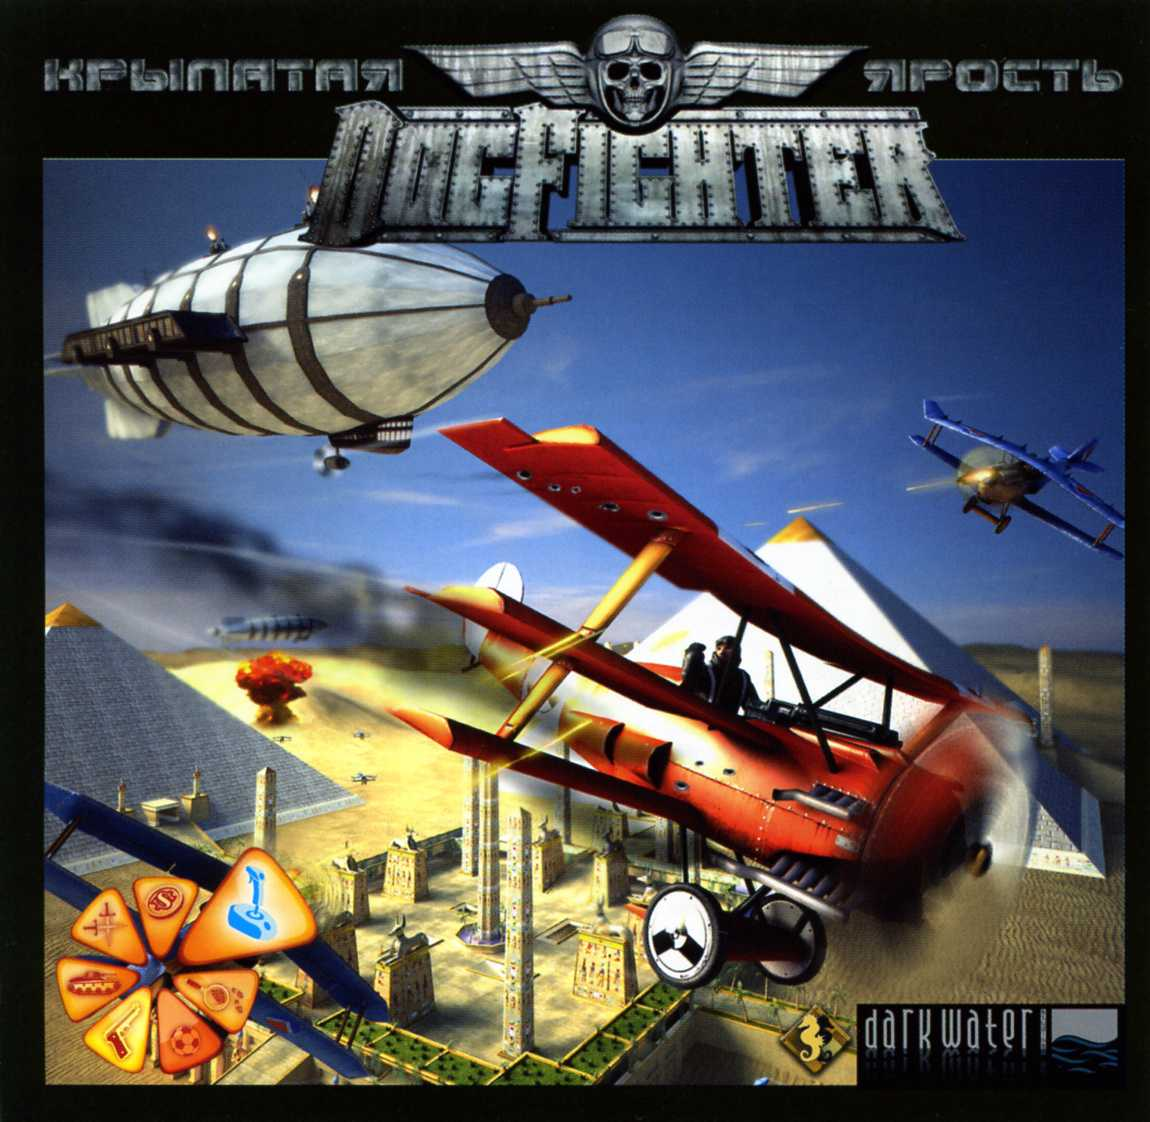 DogFighter: Winged fury (activation key in Steam)